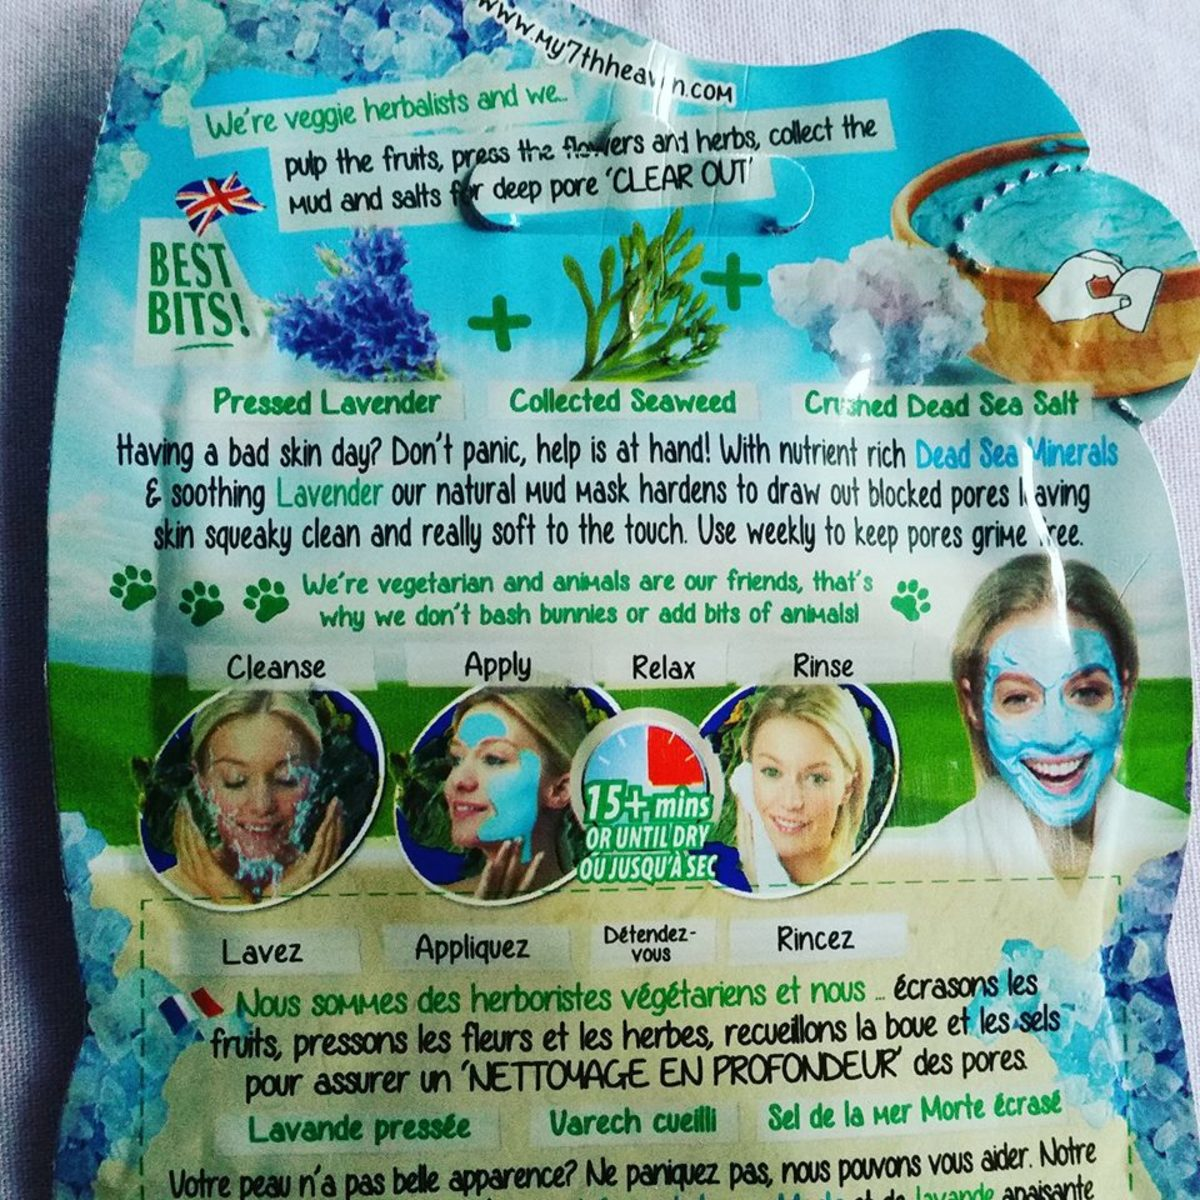 The instructions on the reverse of the 7th Heaven Dead Sea Mud Face Mask packaging.